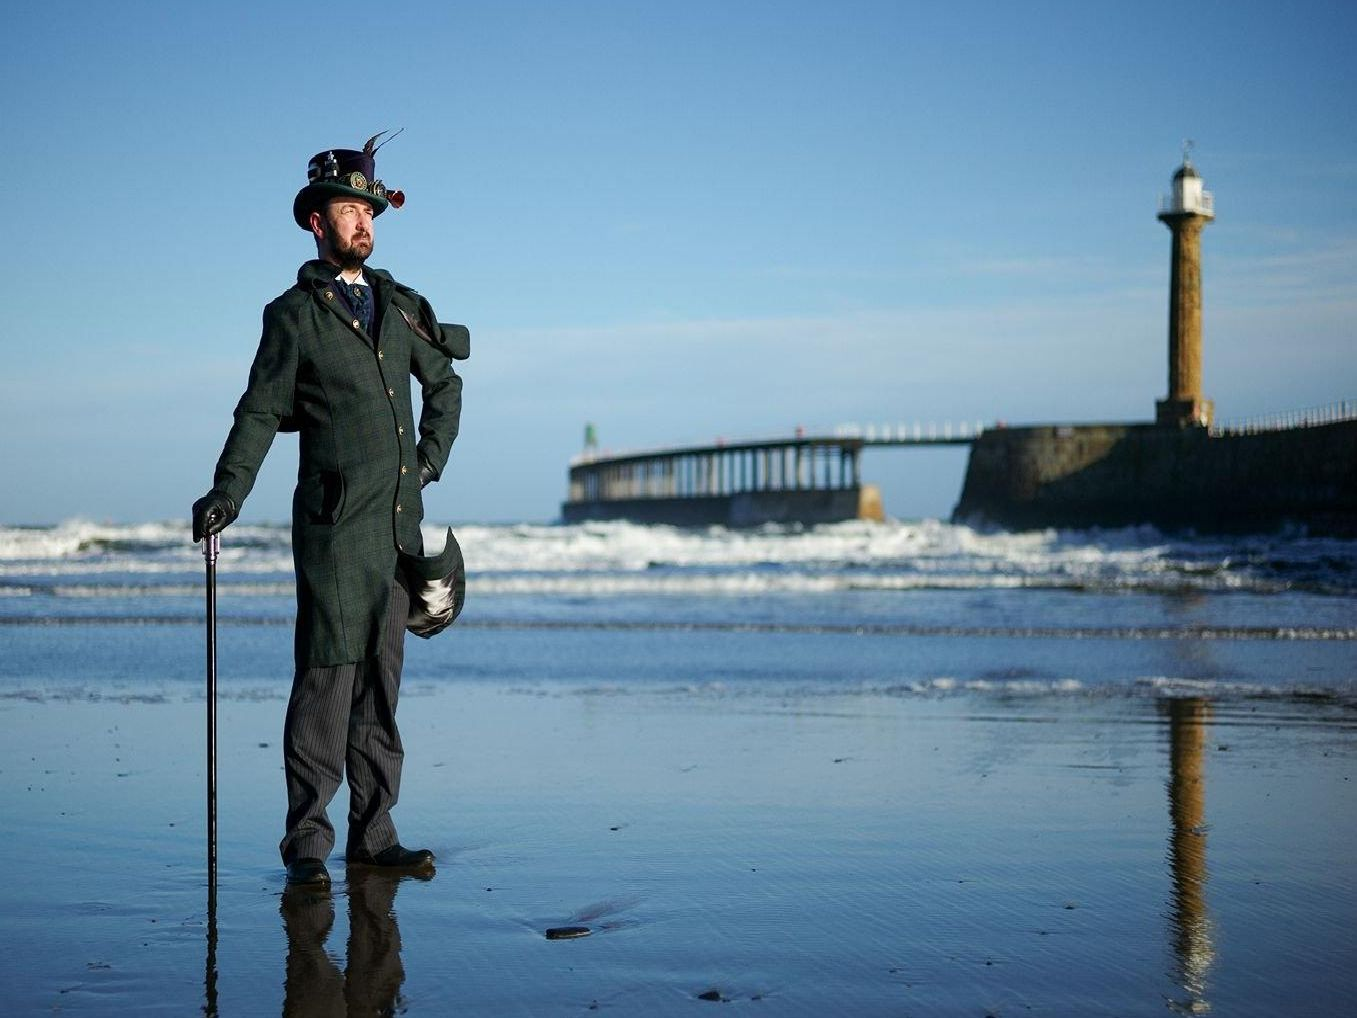 Whitby Steampunk Weekend takes place at Whitby Pavilion from Saturday February 9 to Sunday February 10.